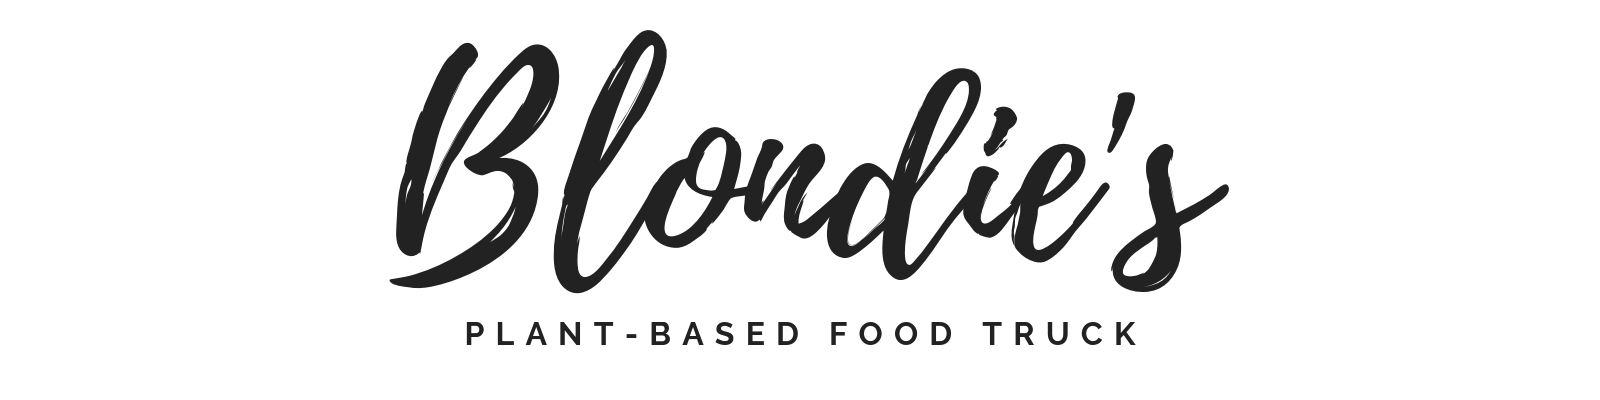 Blondie's Plant-Based Food Truck